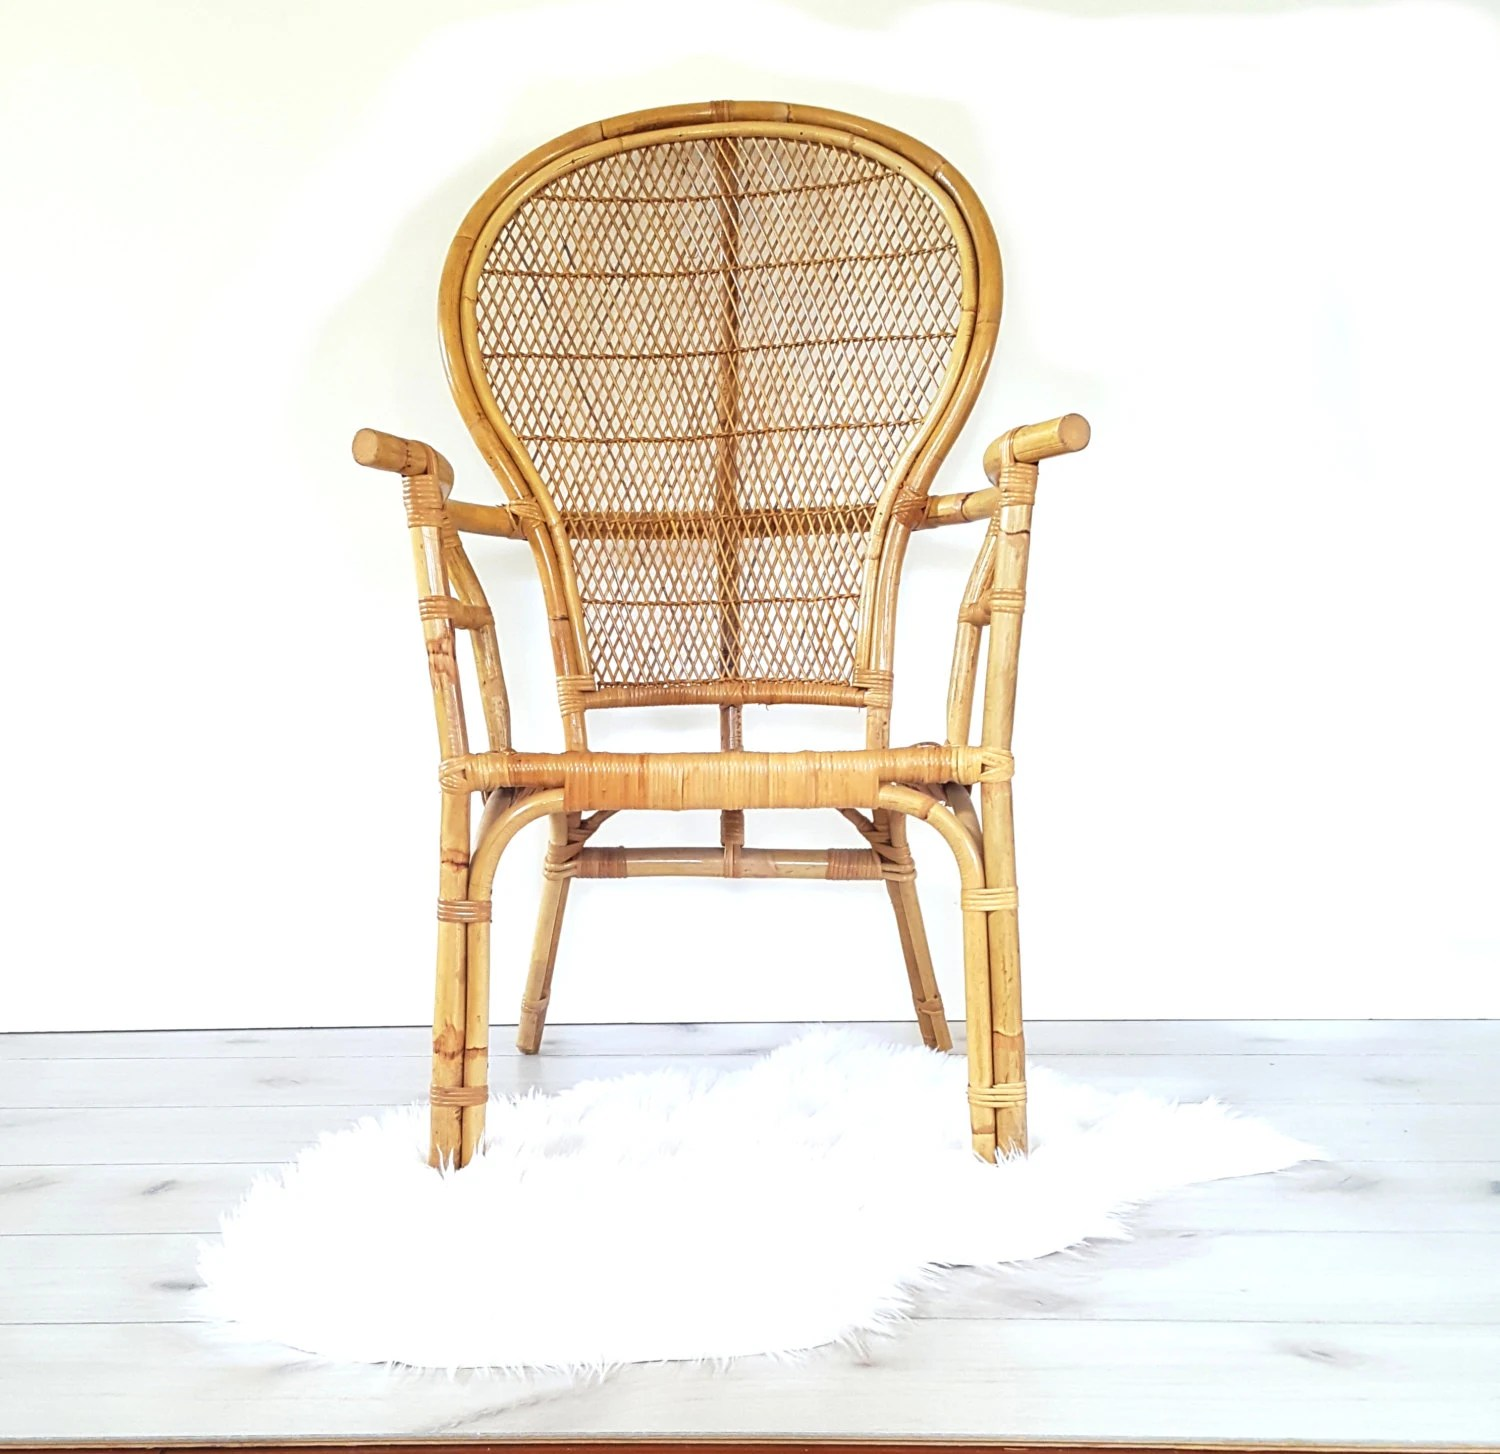 bamboo chairs costco stadium chair arm vintage bentwood rattan high back